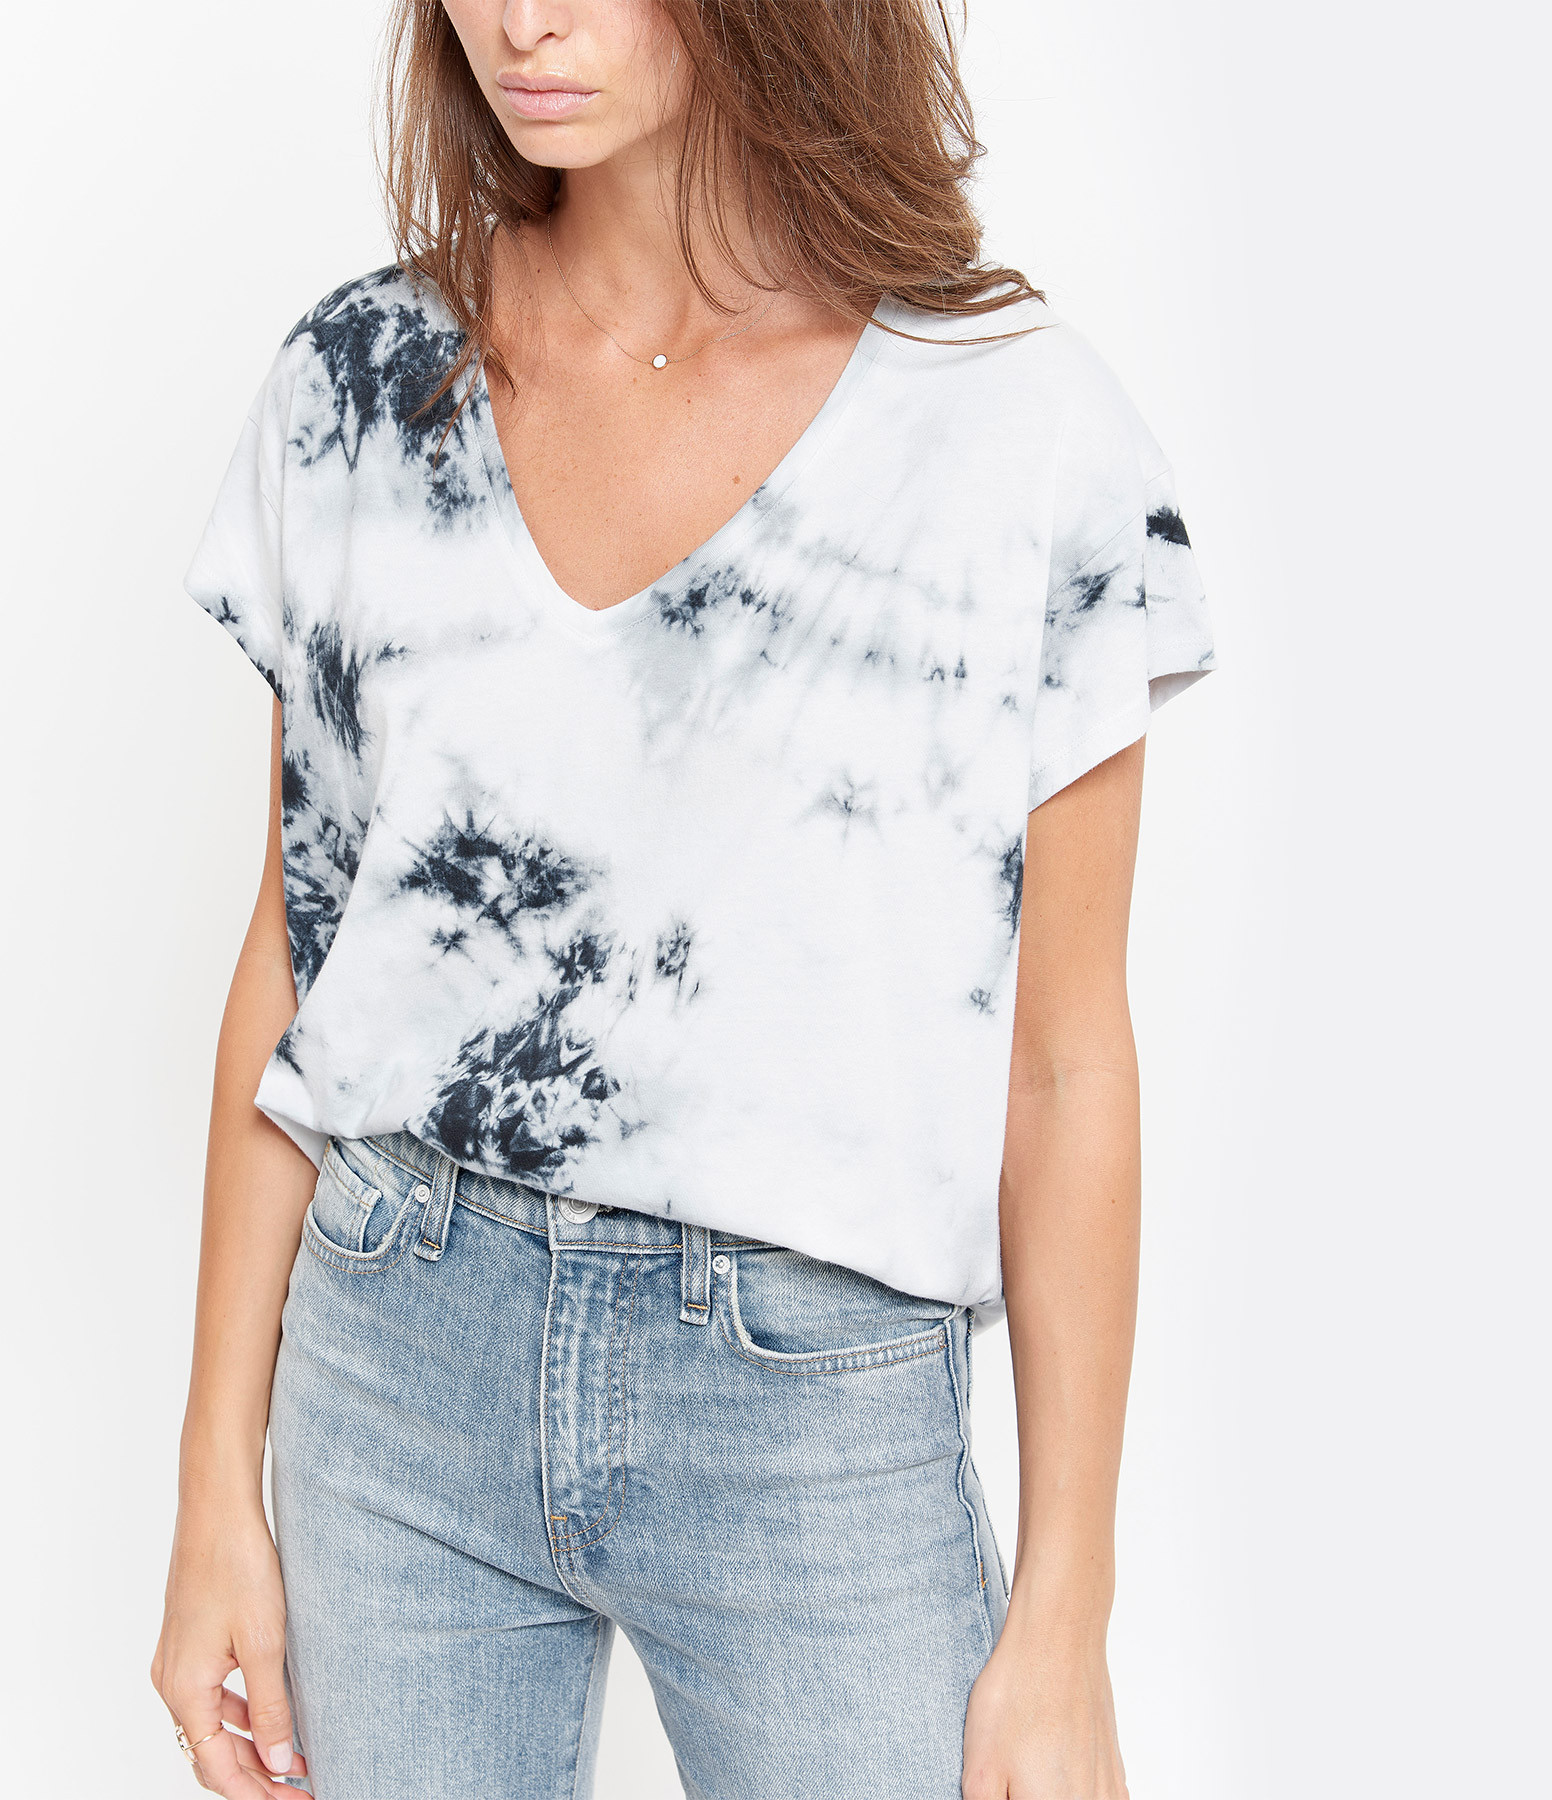 JEANNE VOULAND - Tee-shirt Dale Tie and Dye Noir Blanc